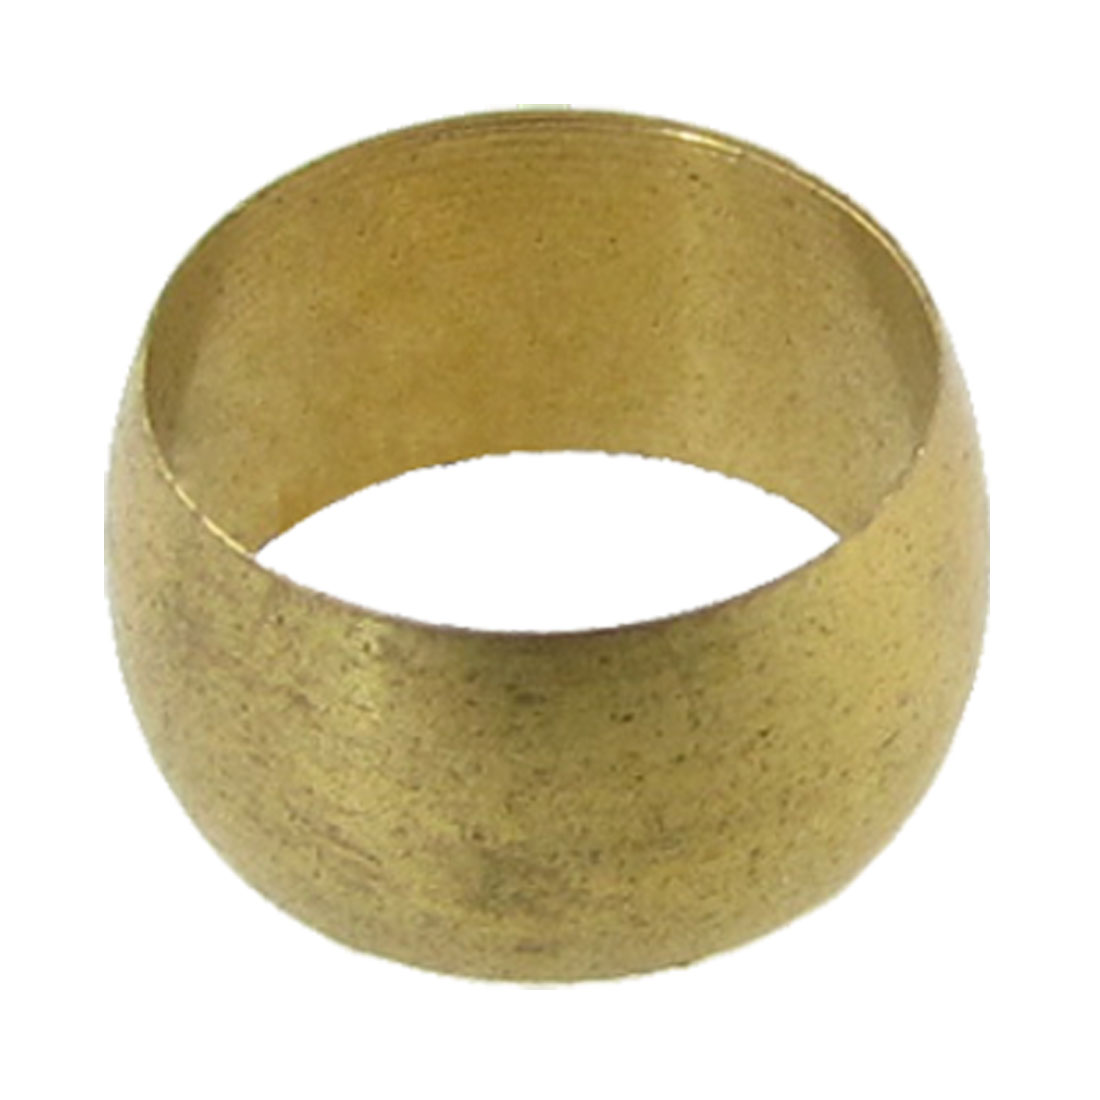 0-39-Diameter-Gold-Tone-Brass-Compression-Tubing-Sleeve